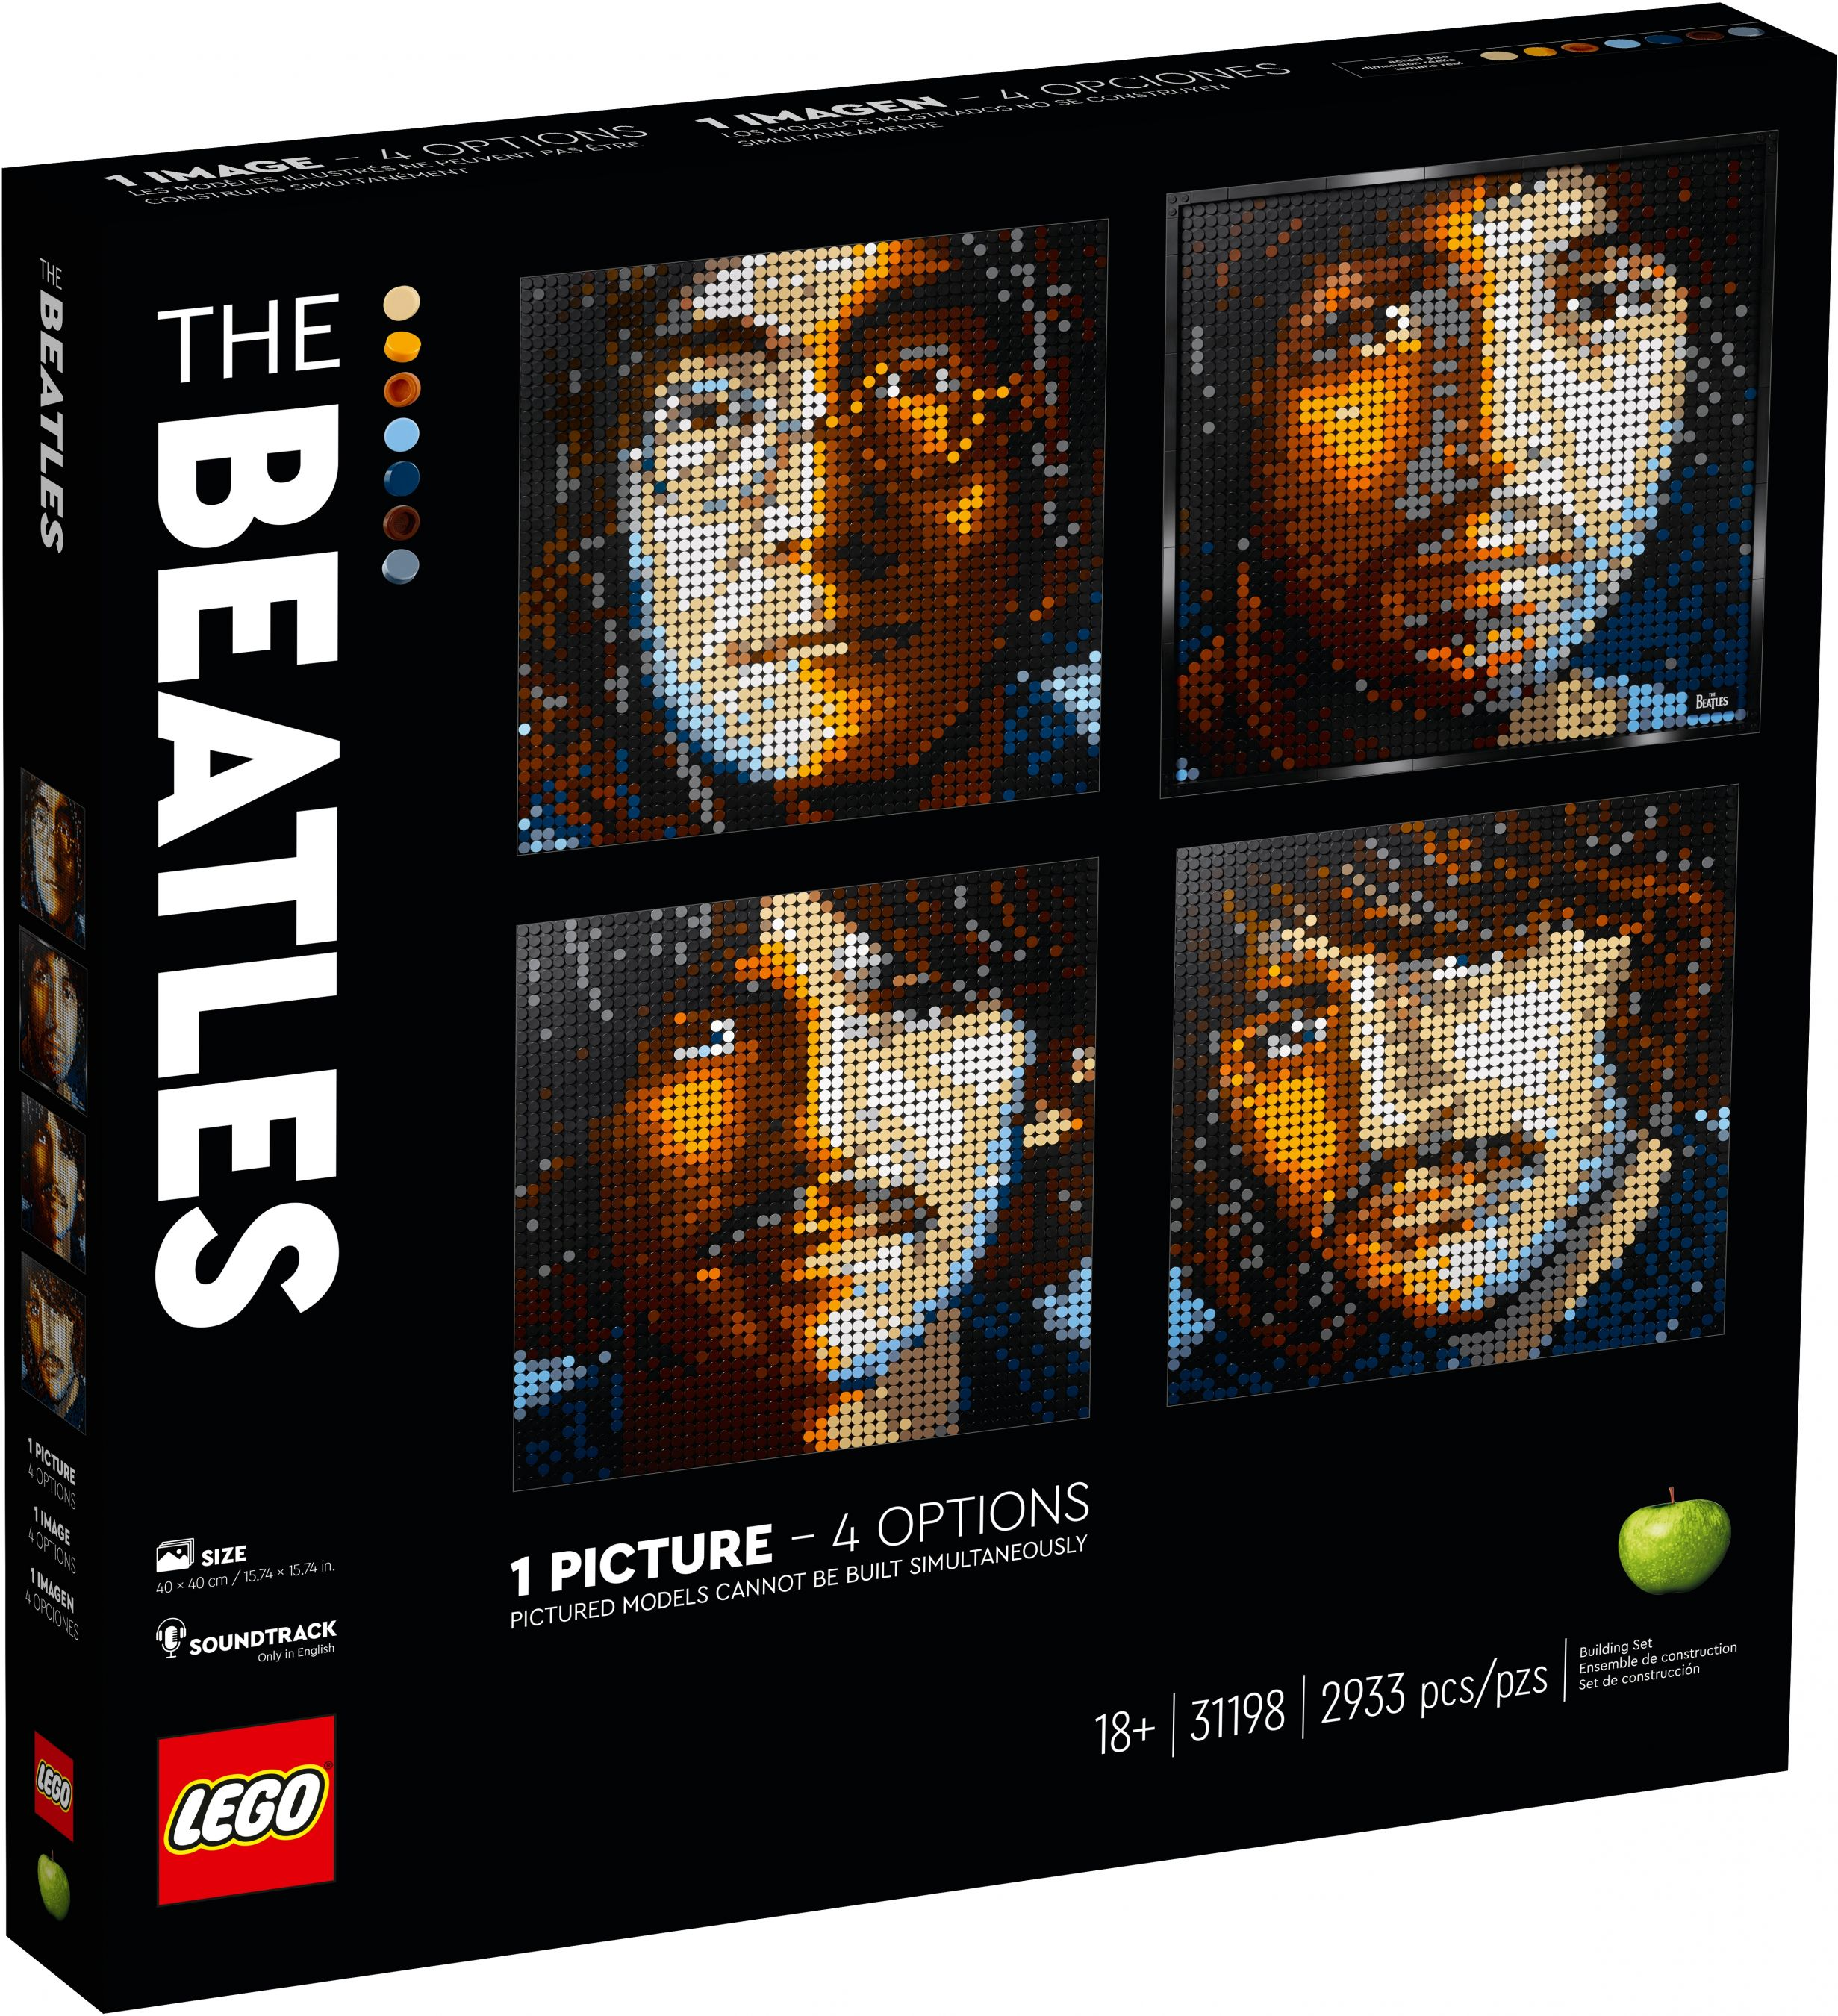 LEGO Art 31198 The Beatles LEGO_31198_alt1.jpg